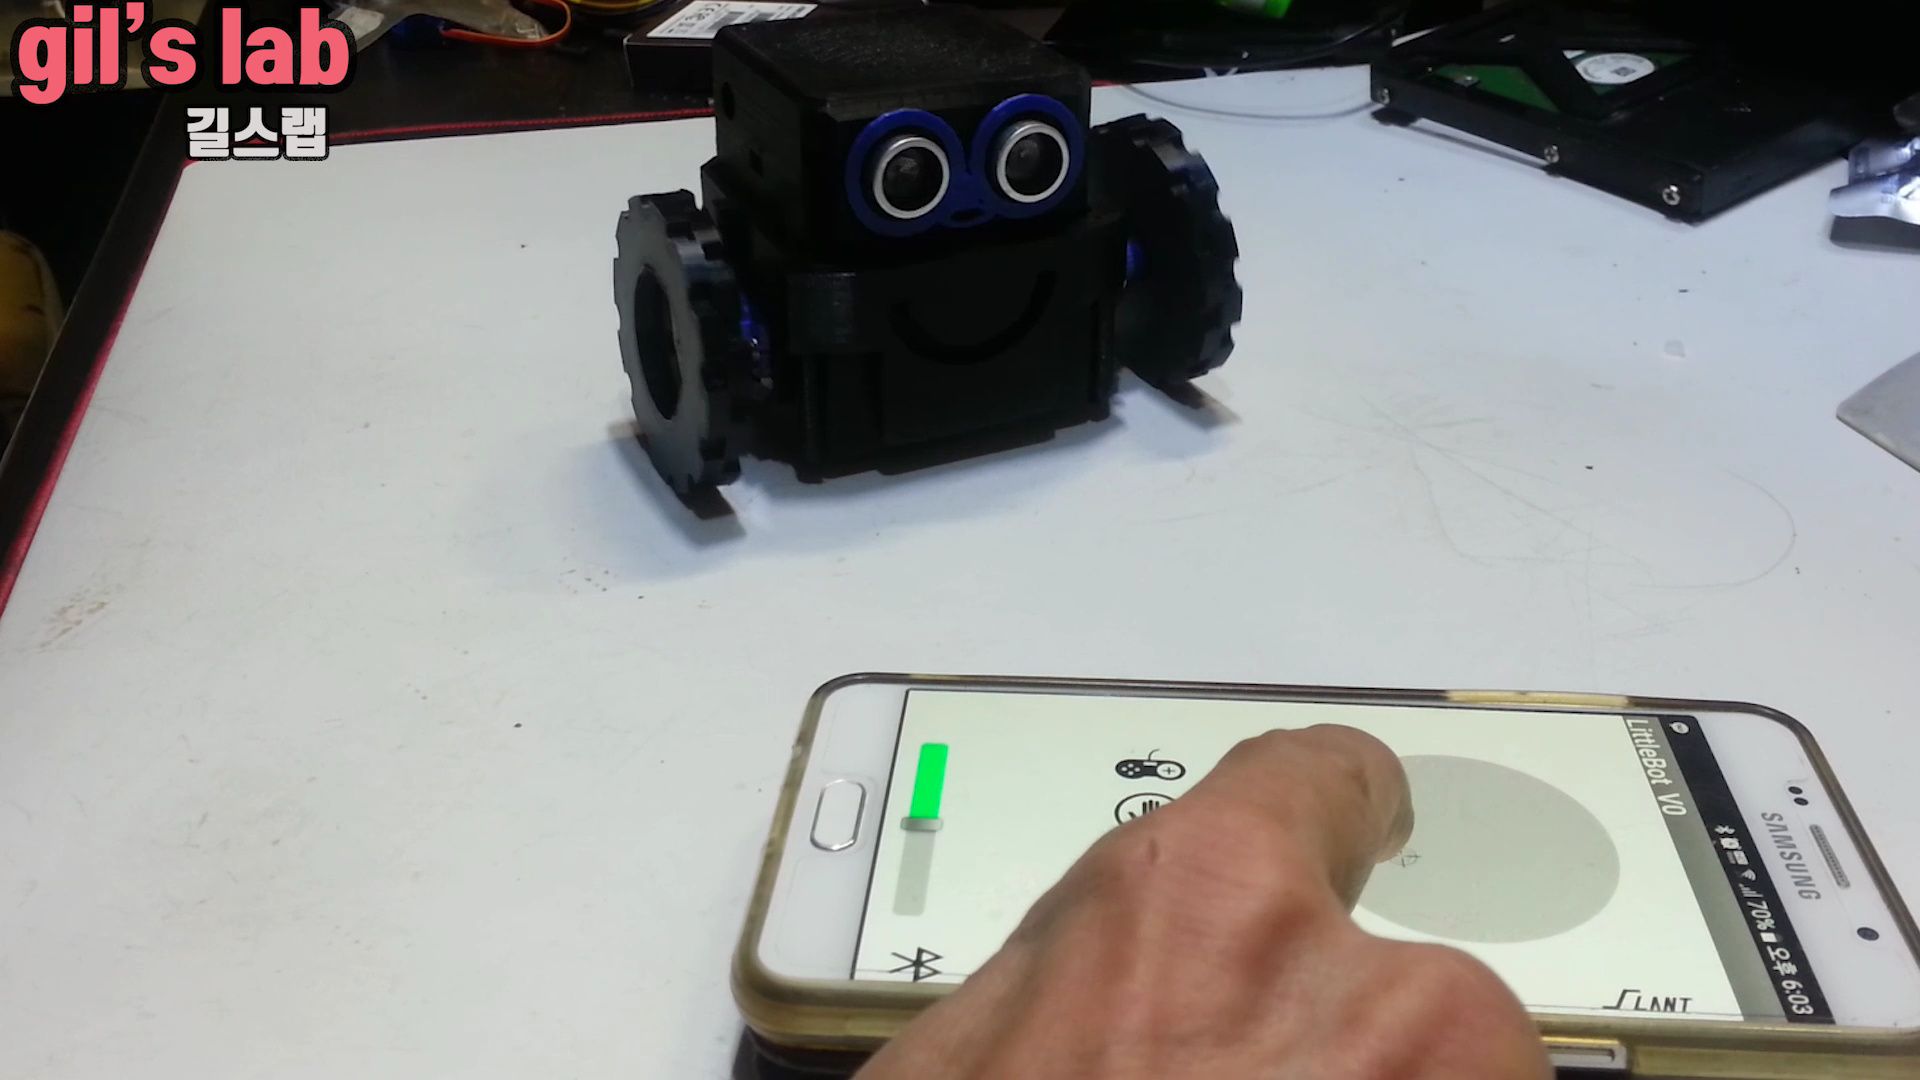 1부_리틀보이.mp4_000009009.png Download free STL file How to make a little robot controlled by smartphone • 3D printer design, speedkornet